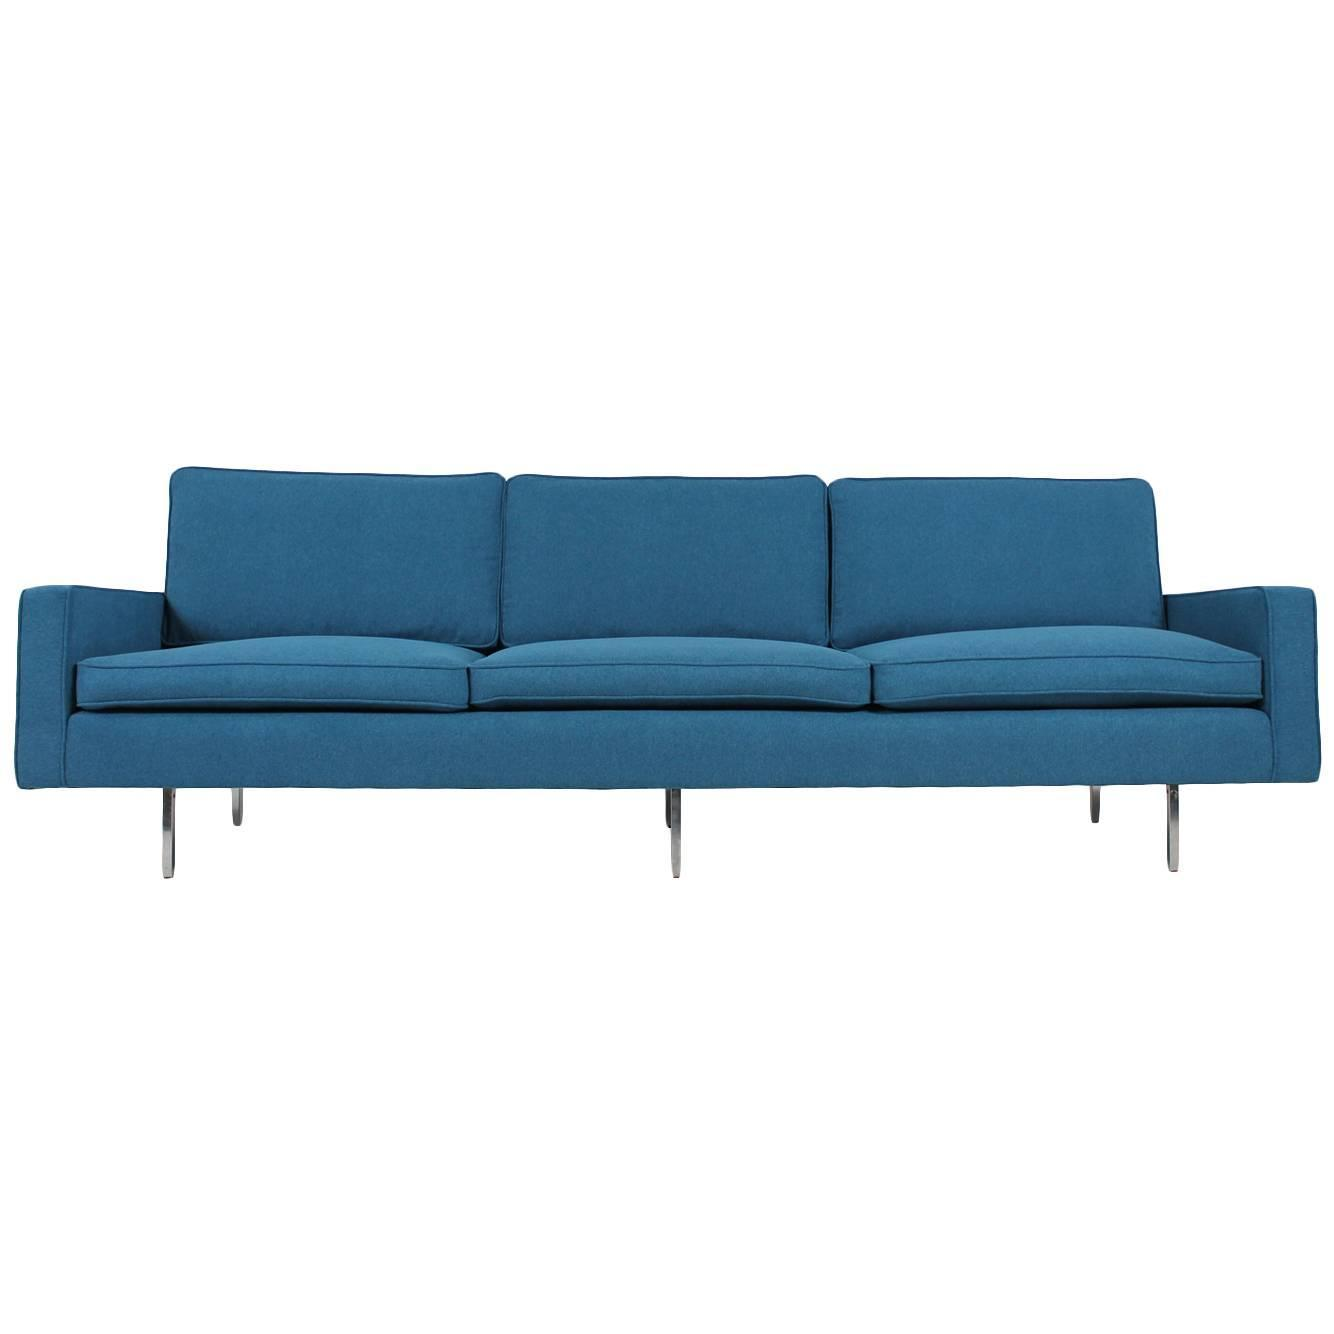 Beautiful Mid Century Florence Knoll Sofa Mod 25 Bc International 1949 At 1stdibs